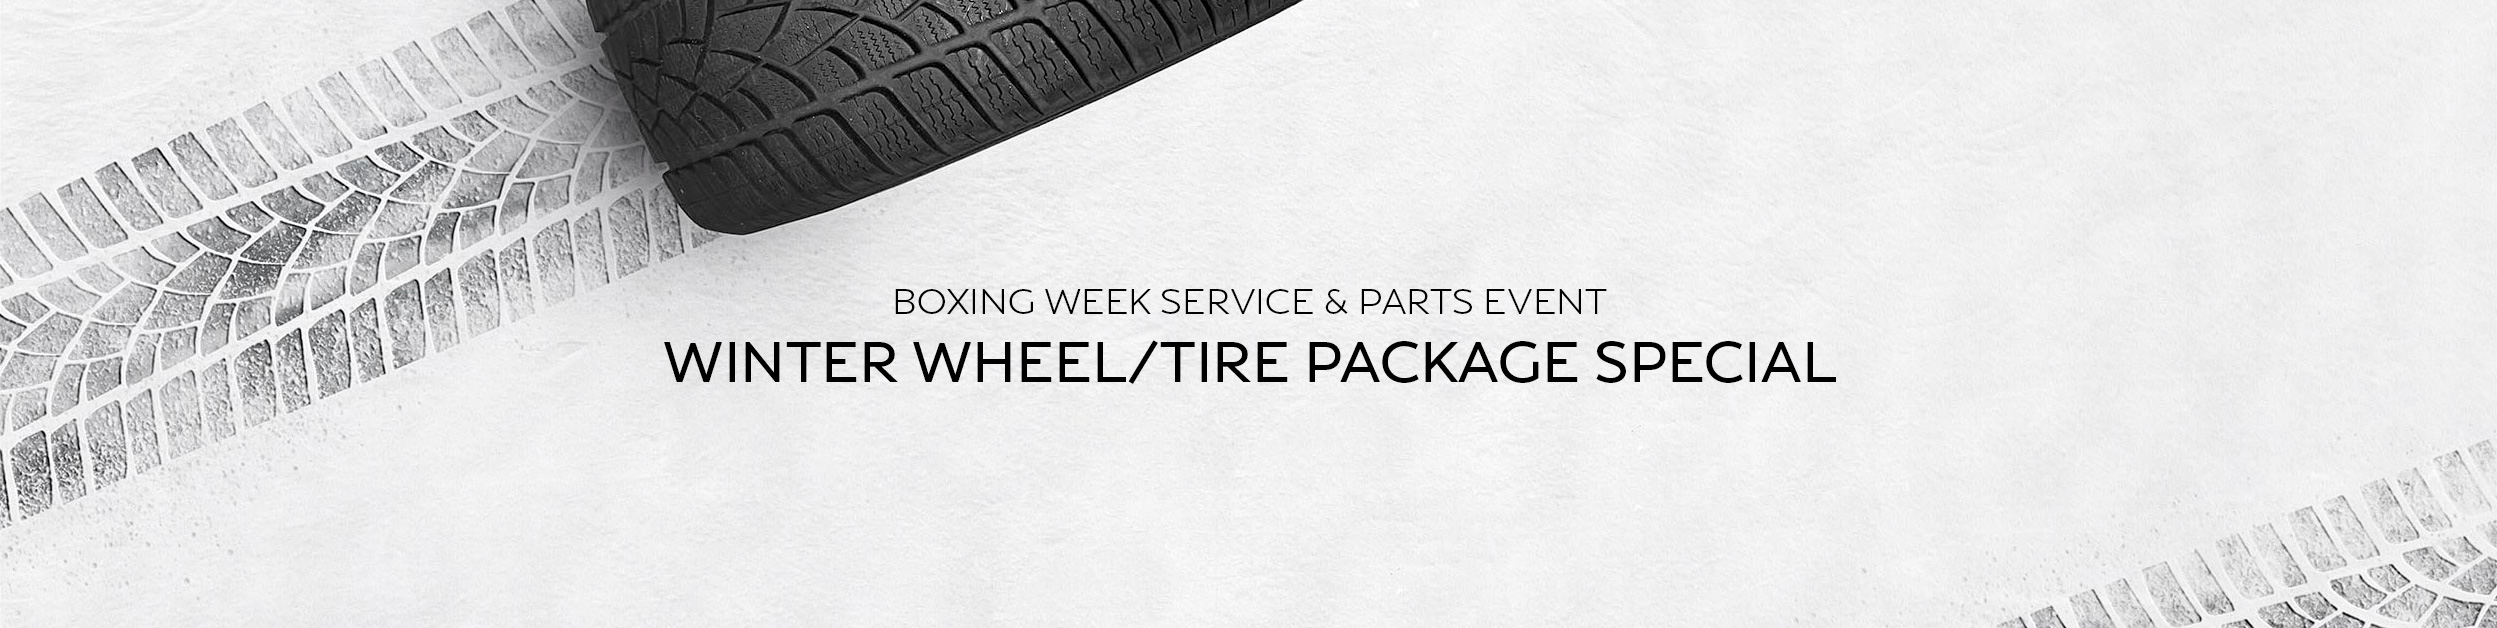 Boxing Week Service & Parts Event